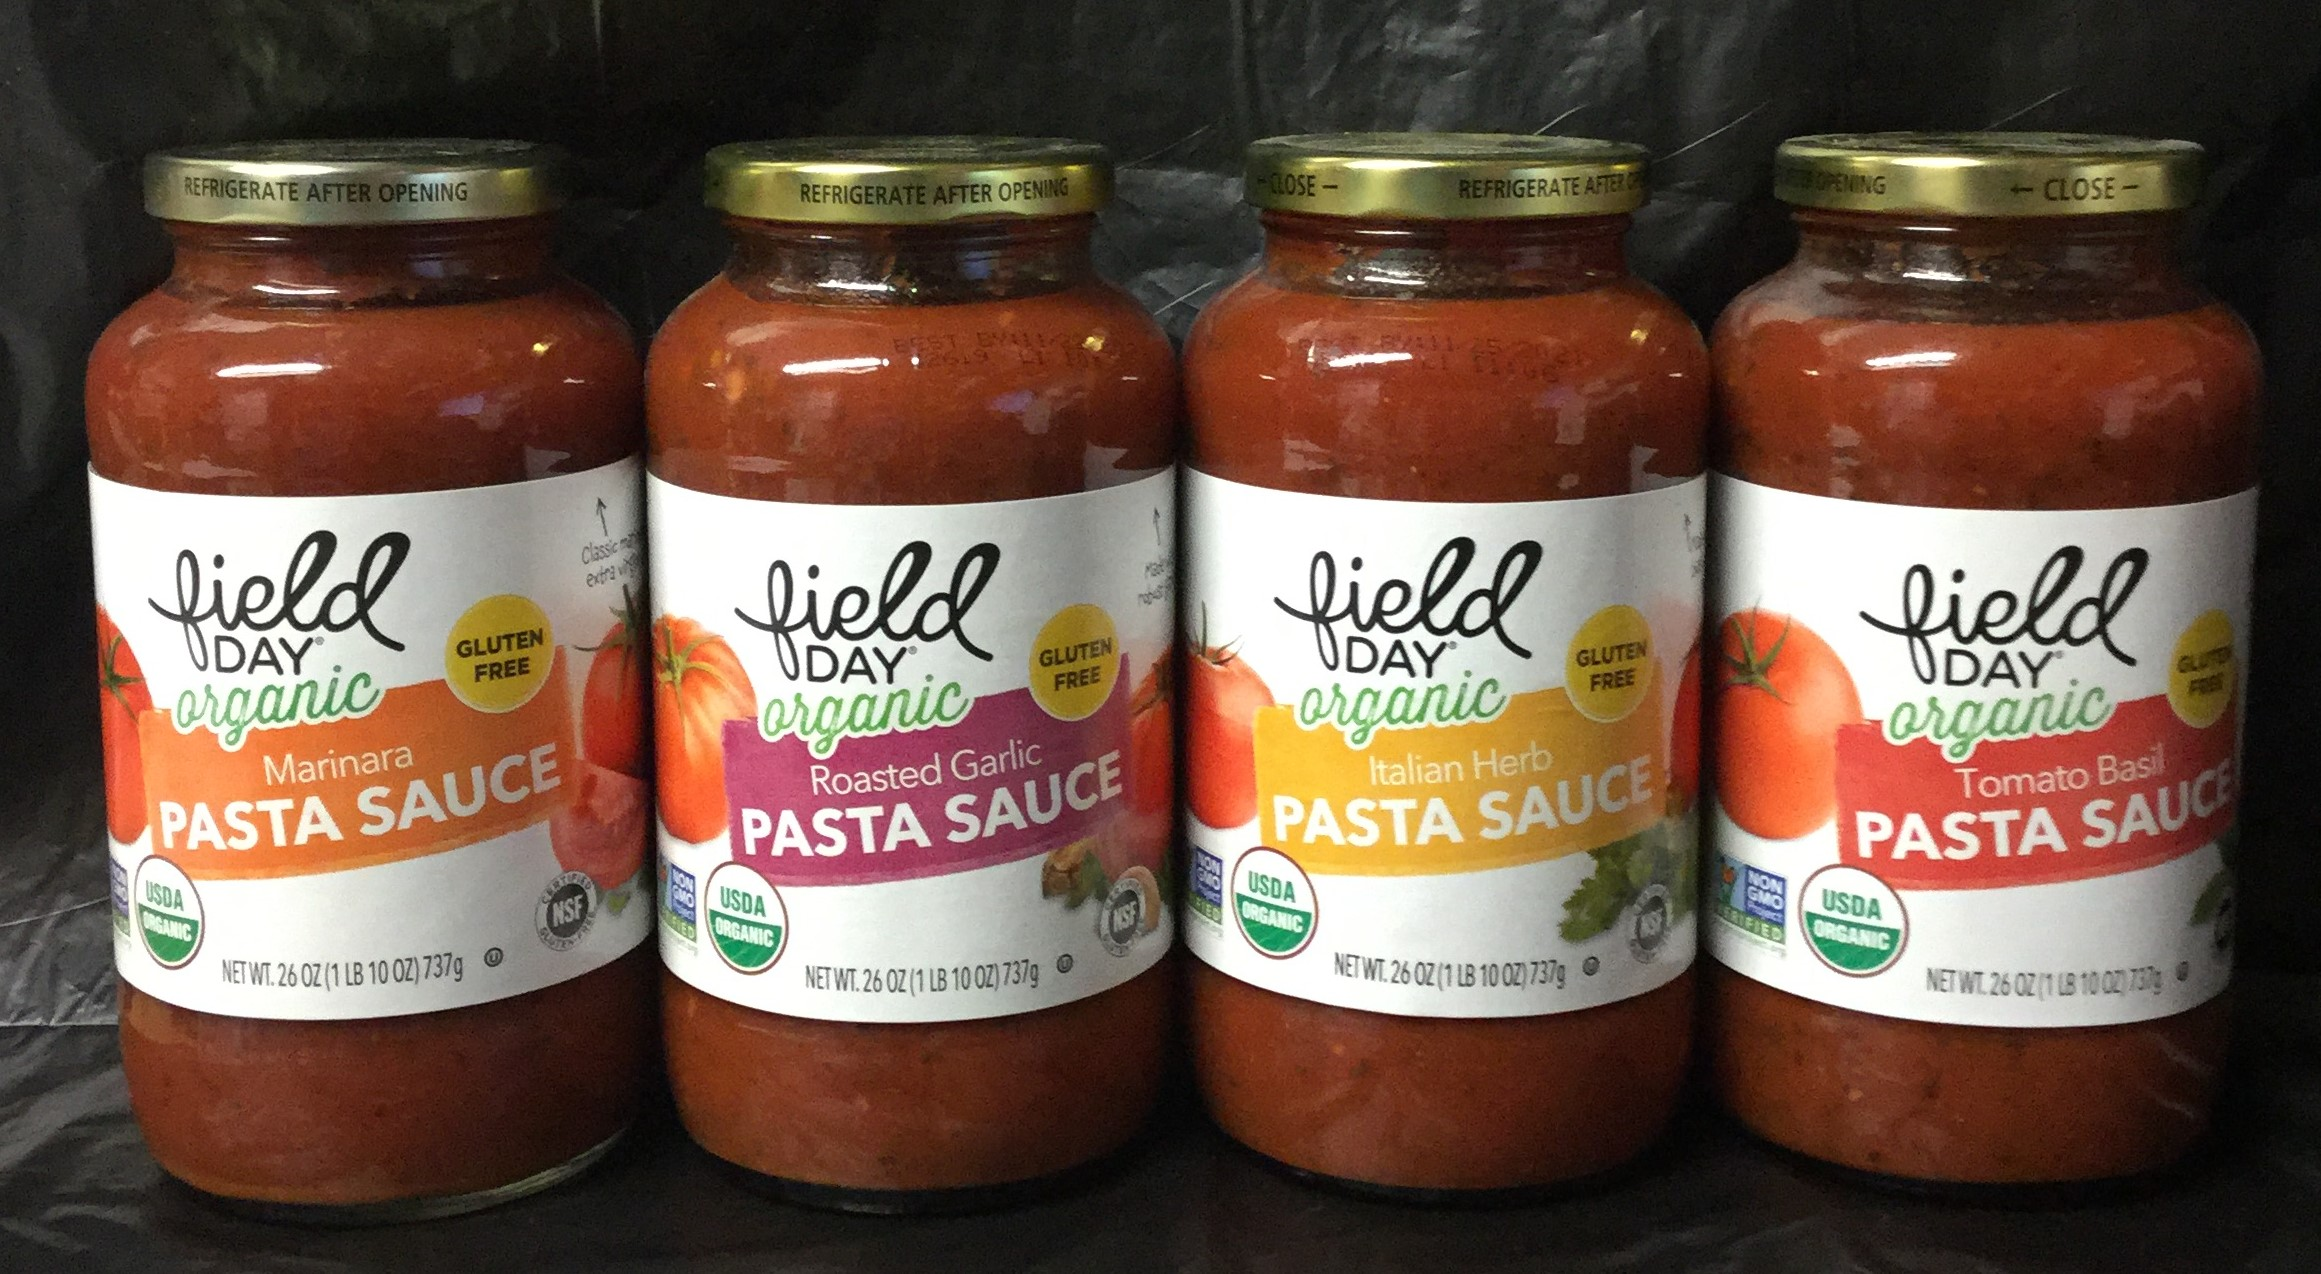 FIELD DAY Organic Pasta Sauce, 26 oz